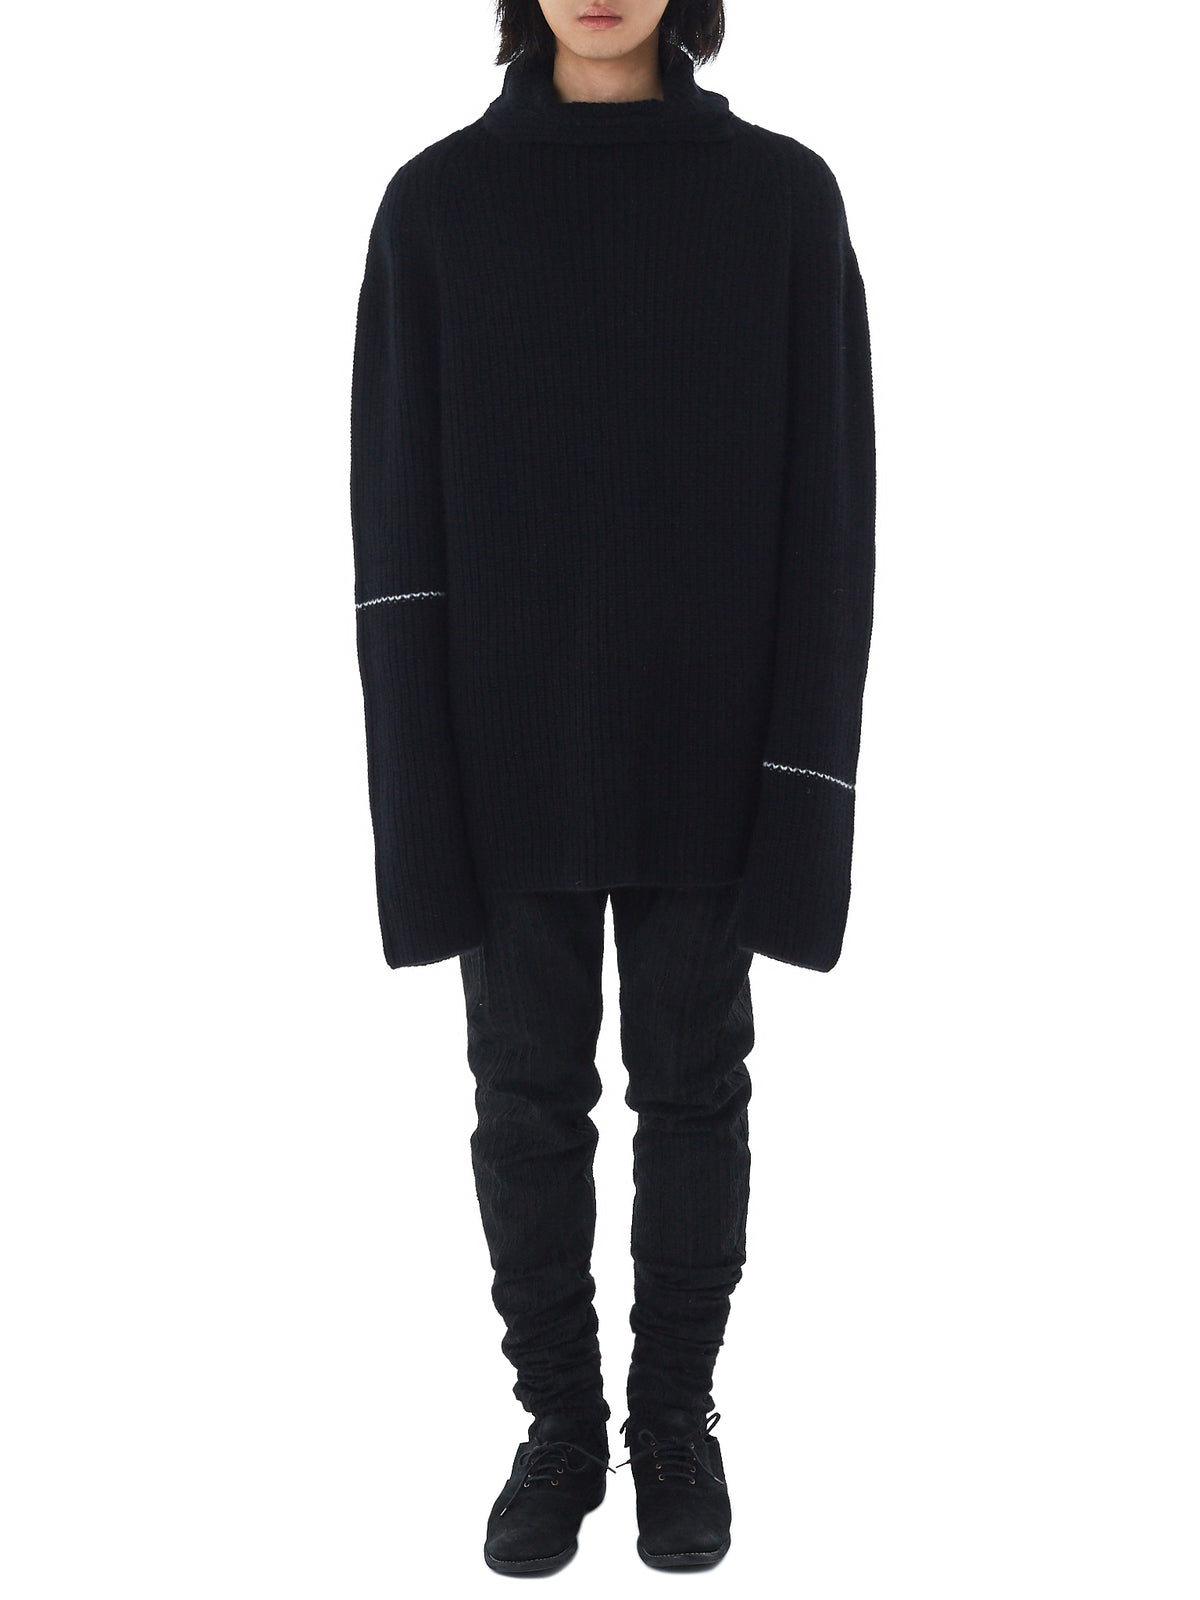 Lost & Found Sweater - Hlorenzo Front